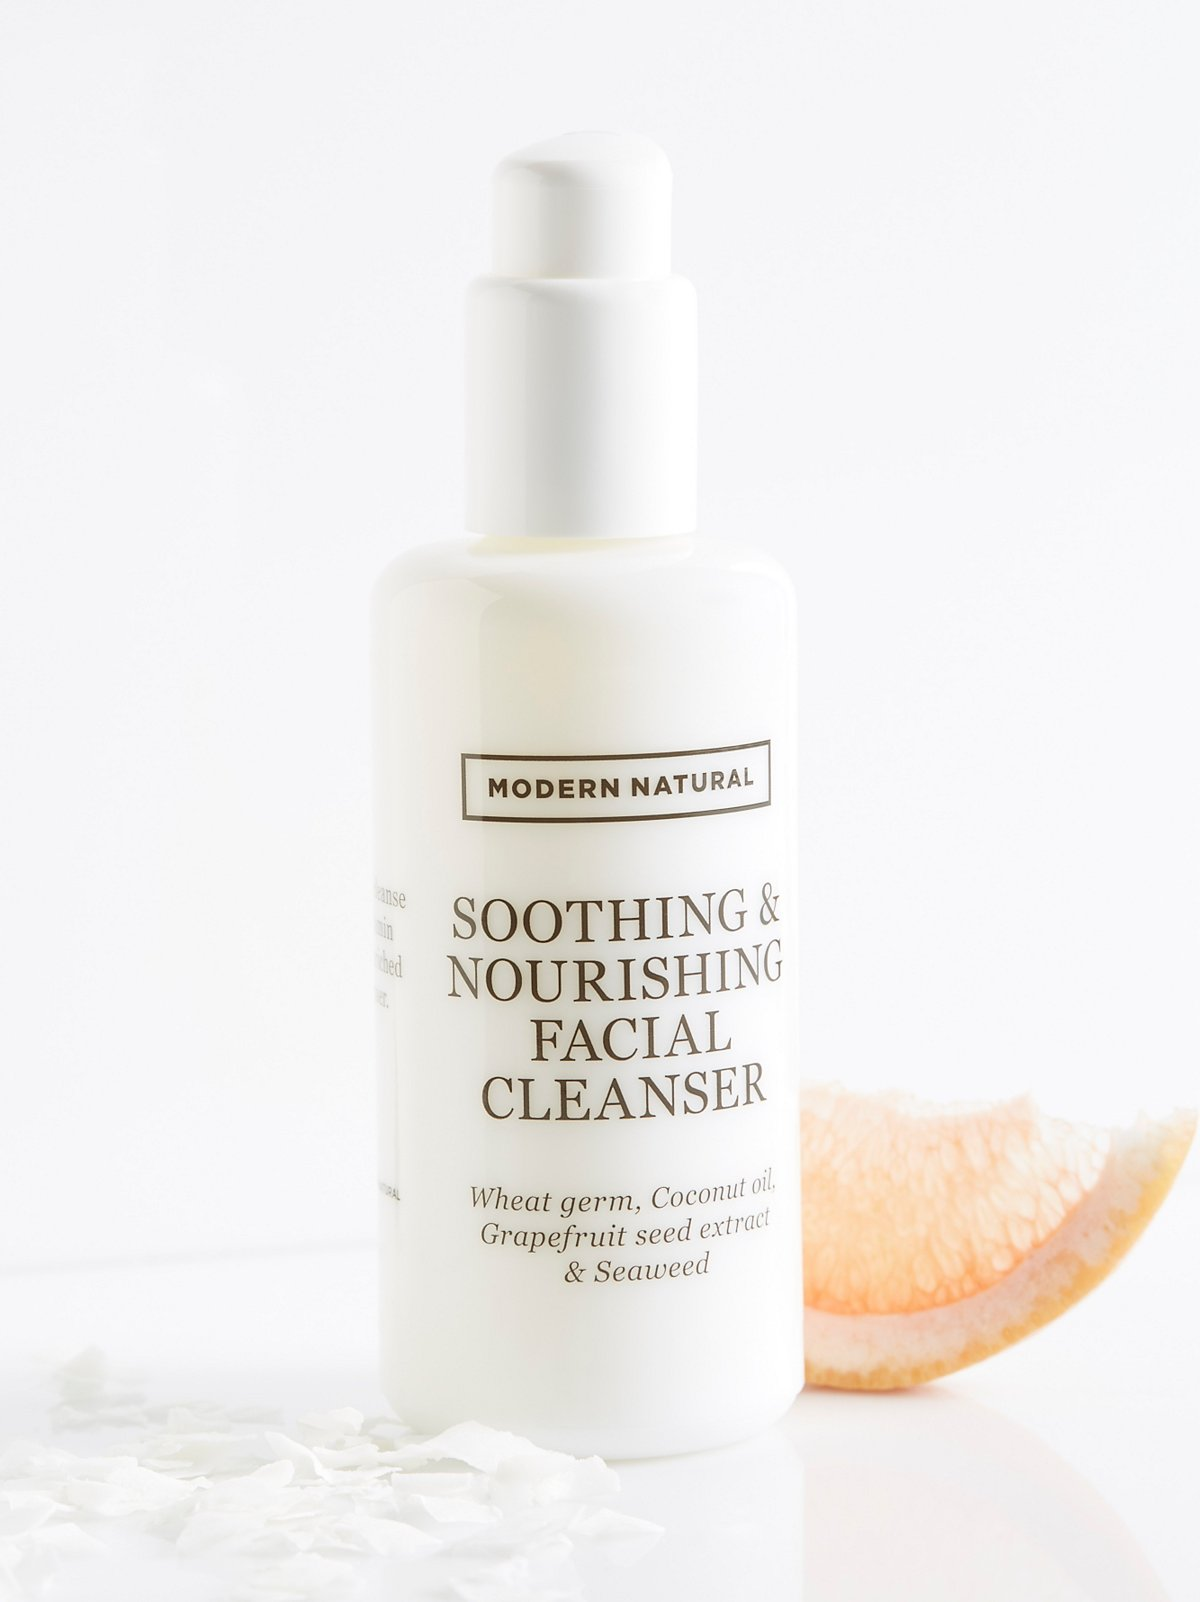 Soothing & Nourishing Facial Cleanser